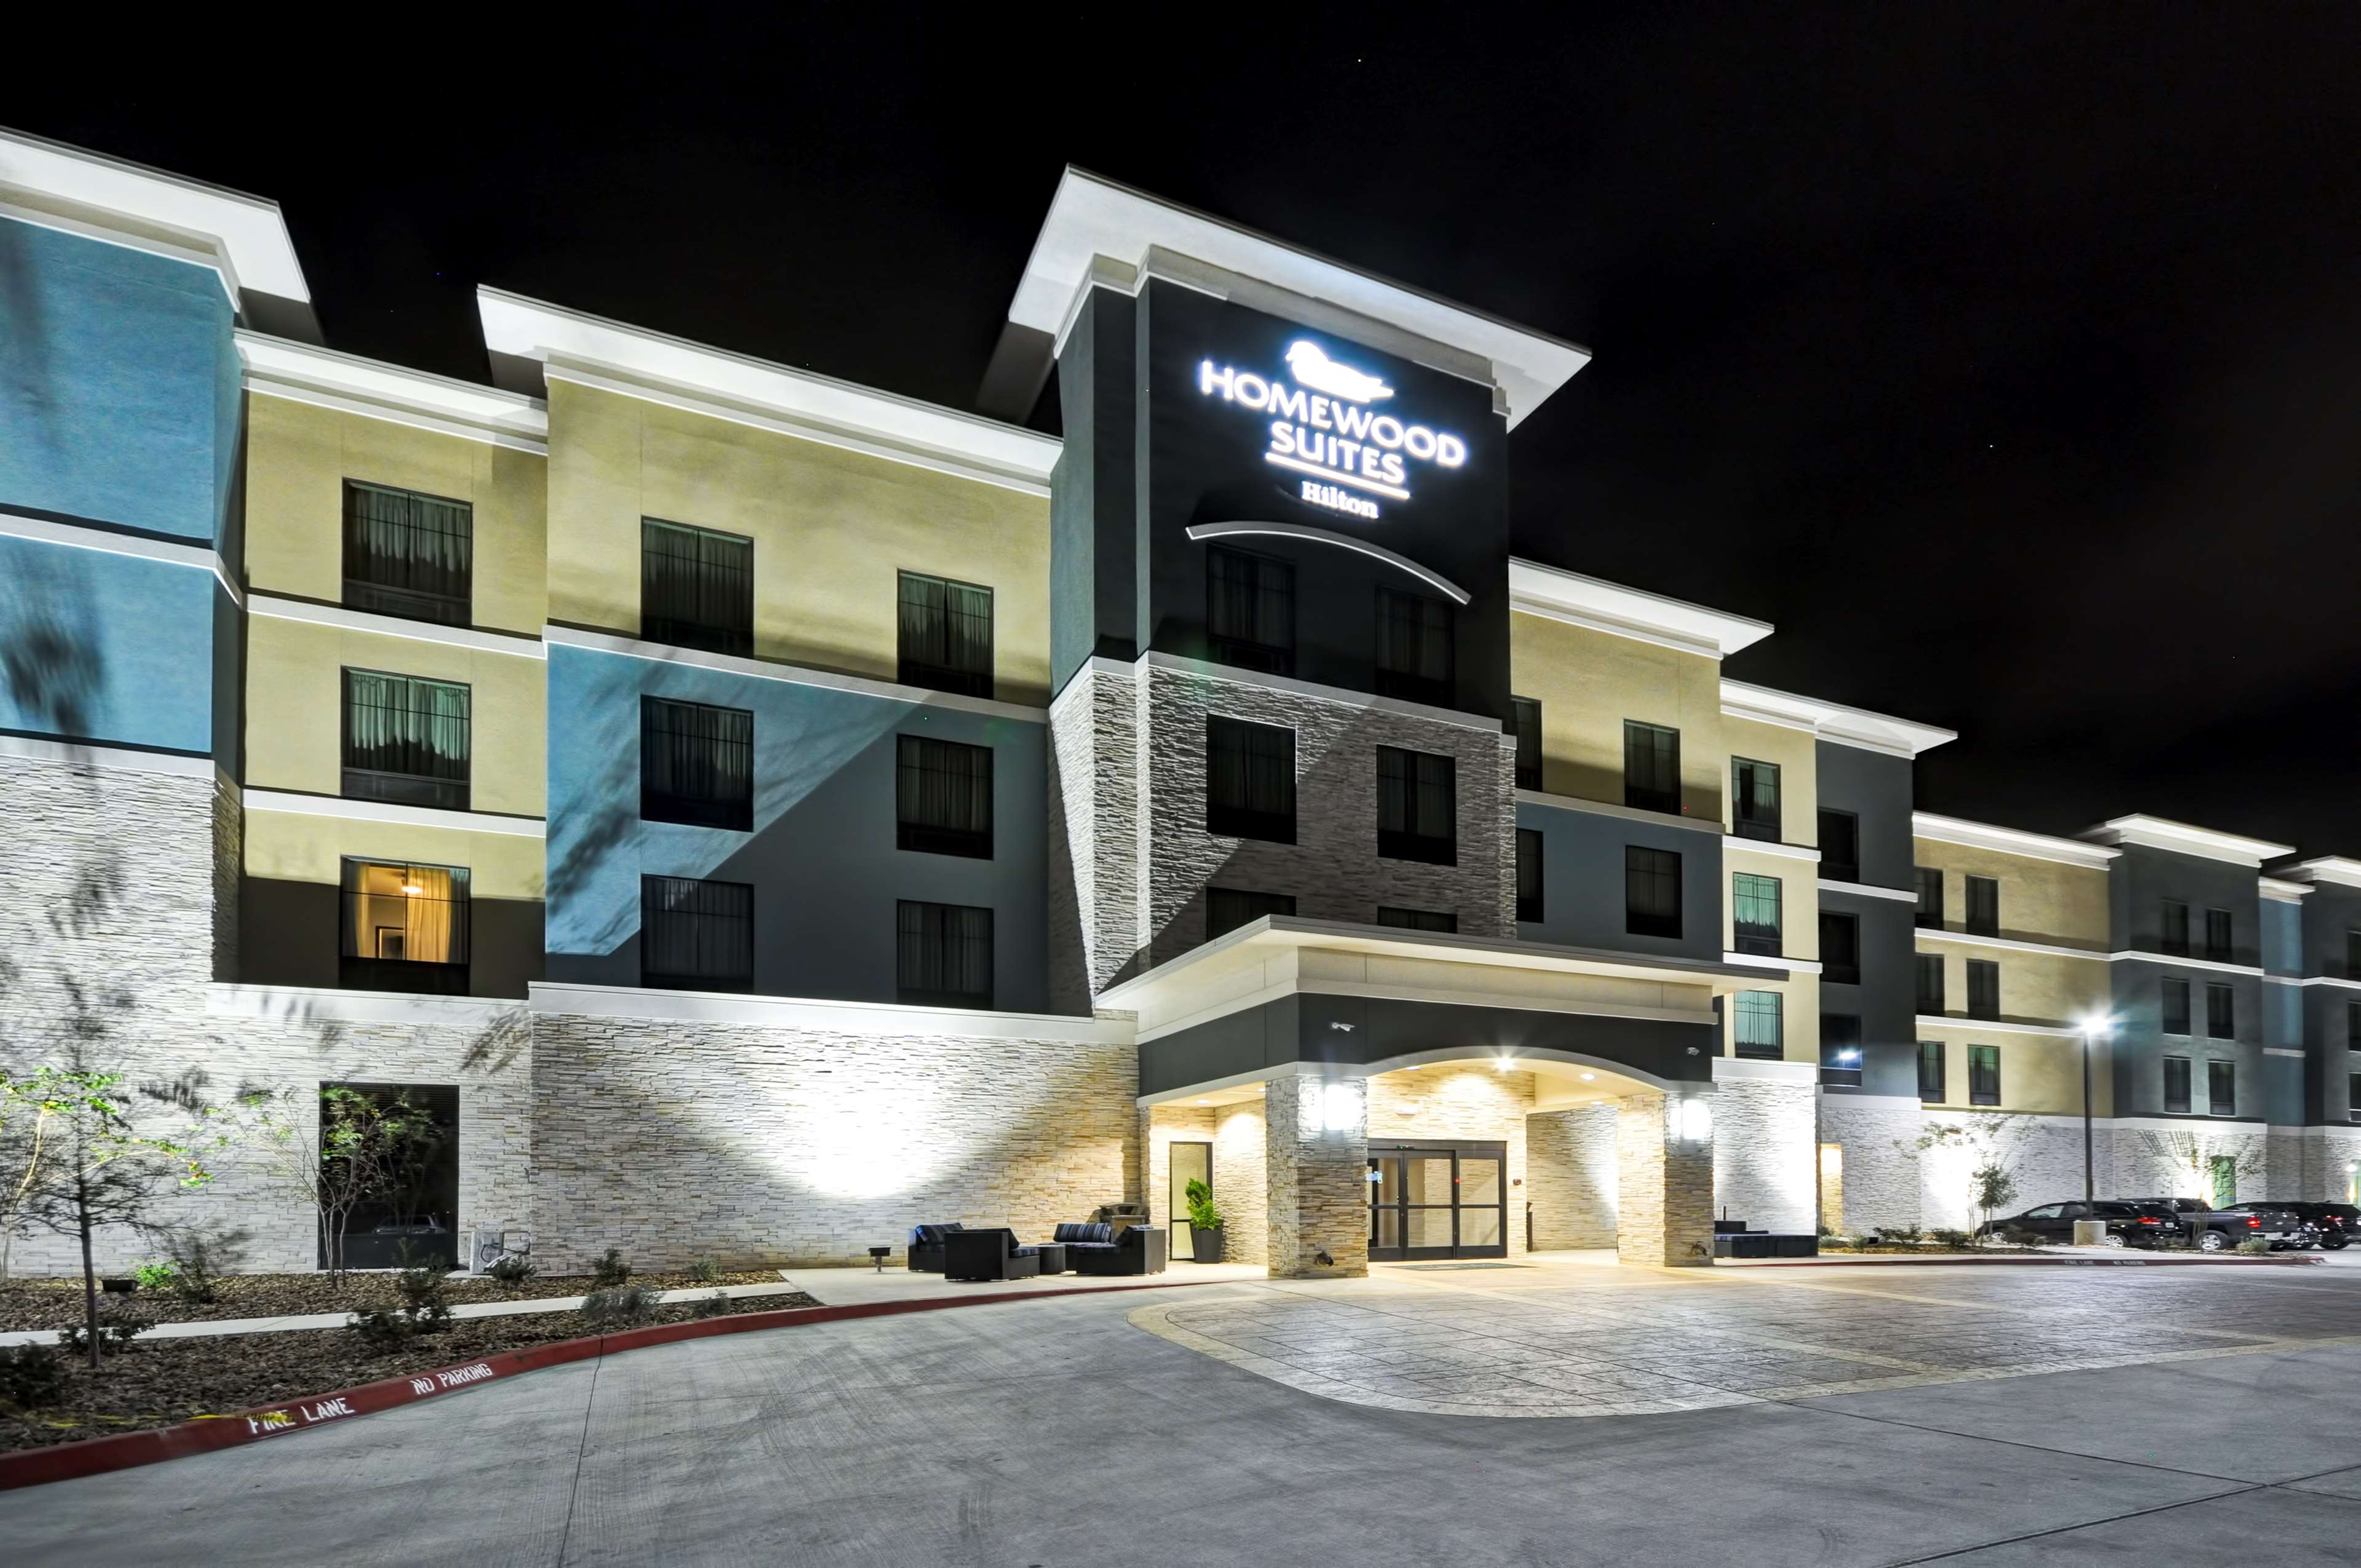 Homewood Suites by Hilton New Braunfels image 1